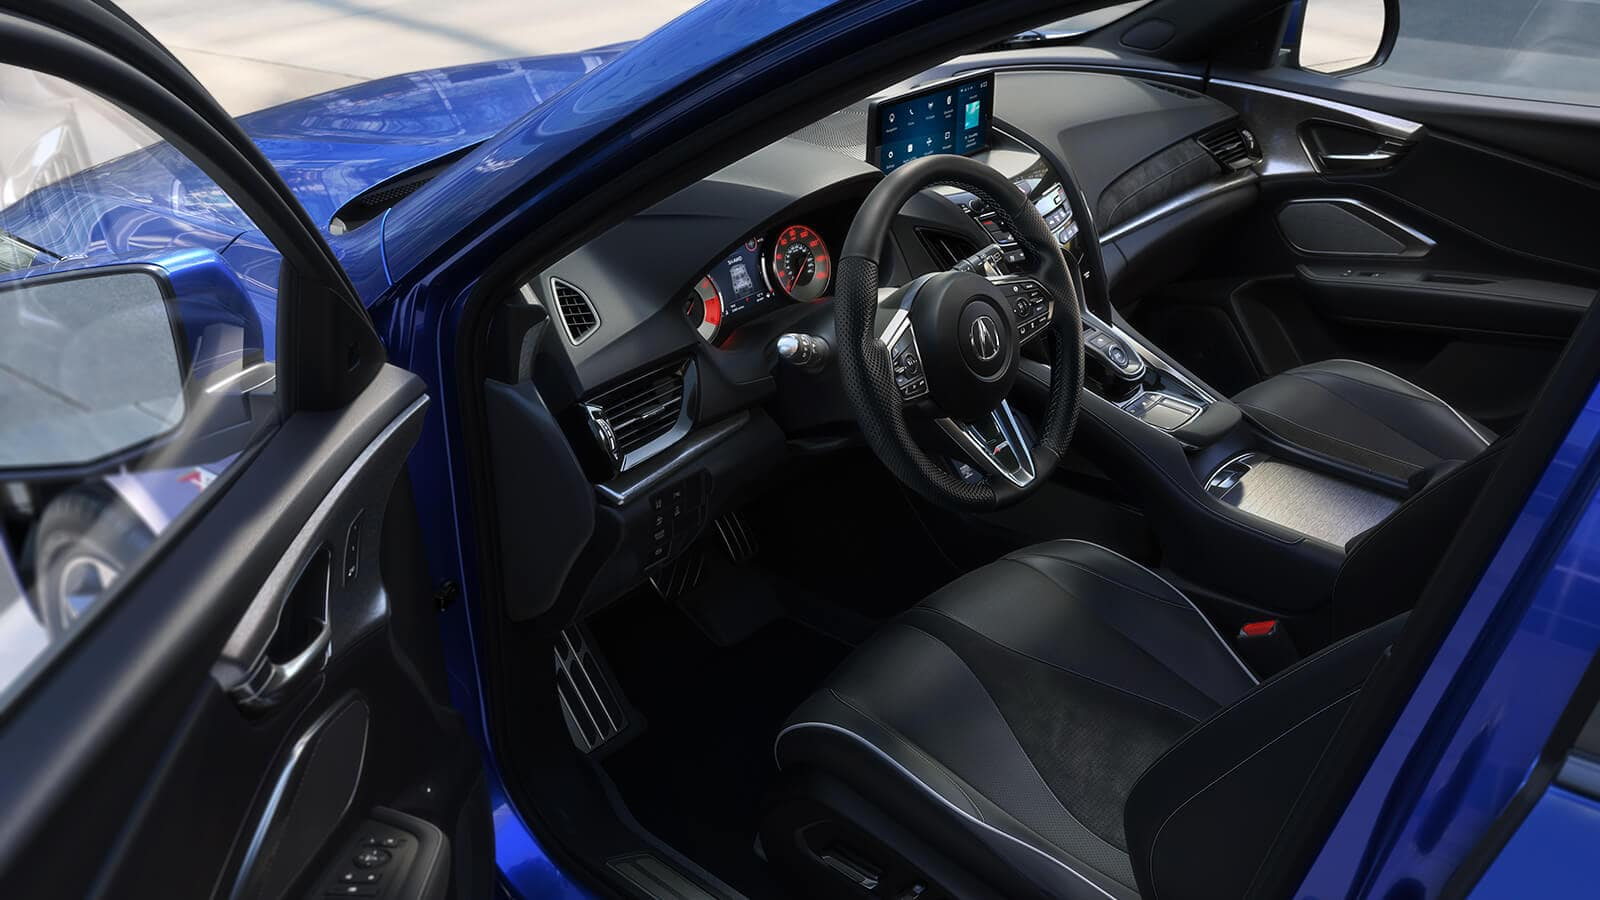 2020 Acura RDX Interior Cockpit Driver Side